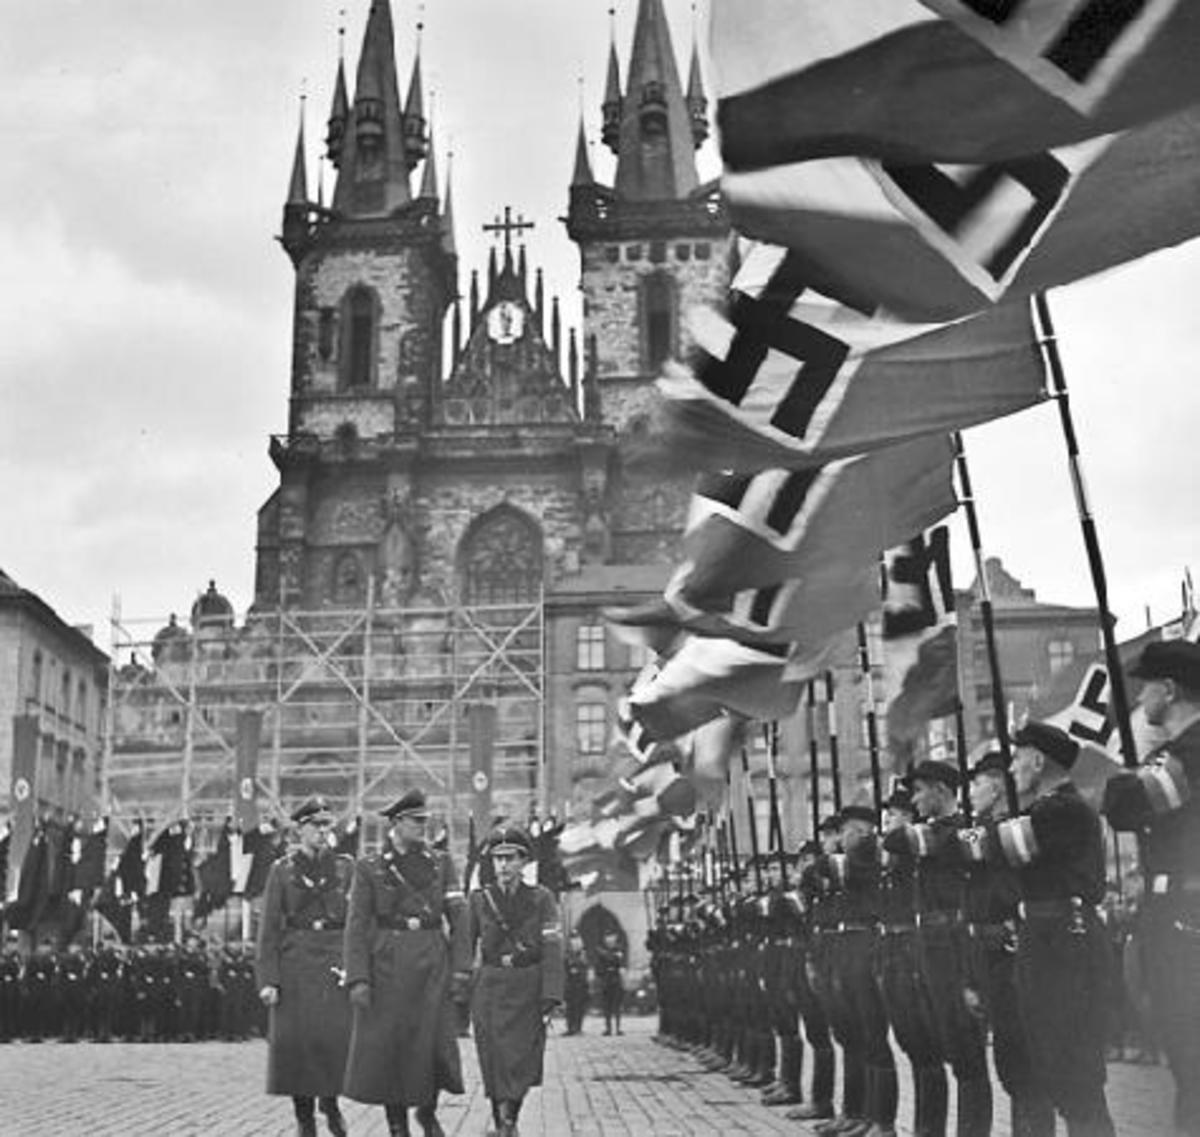 Wartime Prague, Germans on parade - civilians were obliged to look on at the pageants